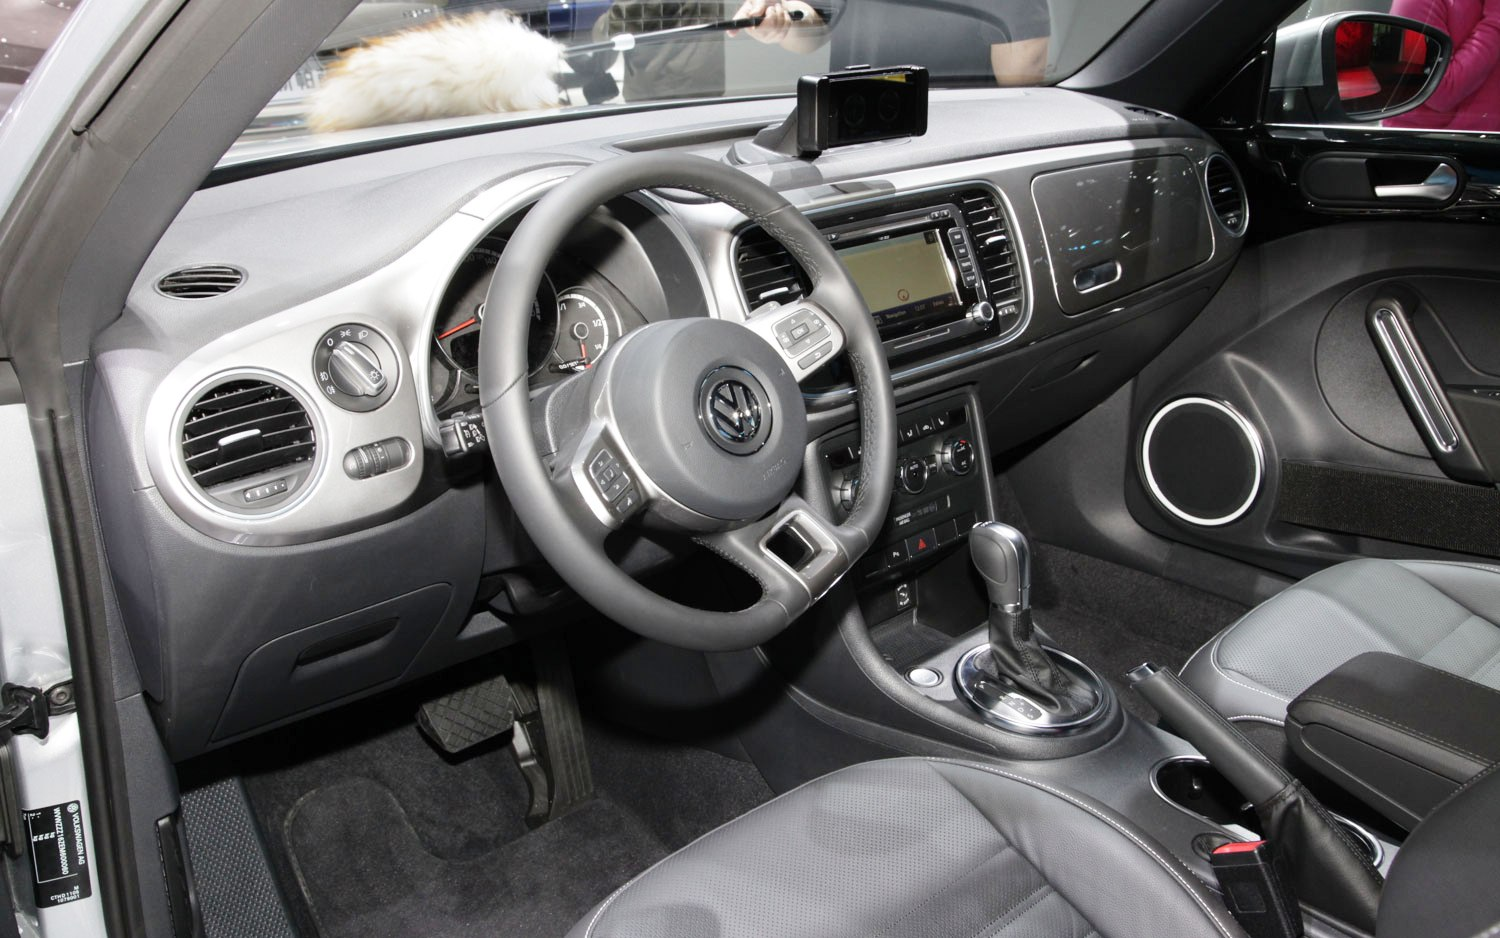 2014 Volkswagen IBeetle Interior (View 2 of 6)